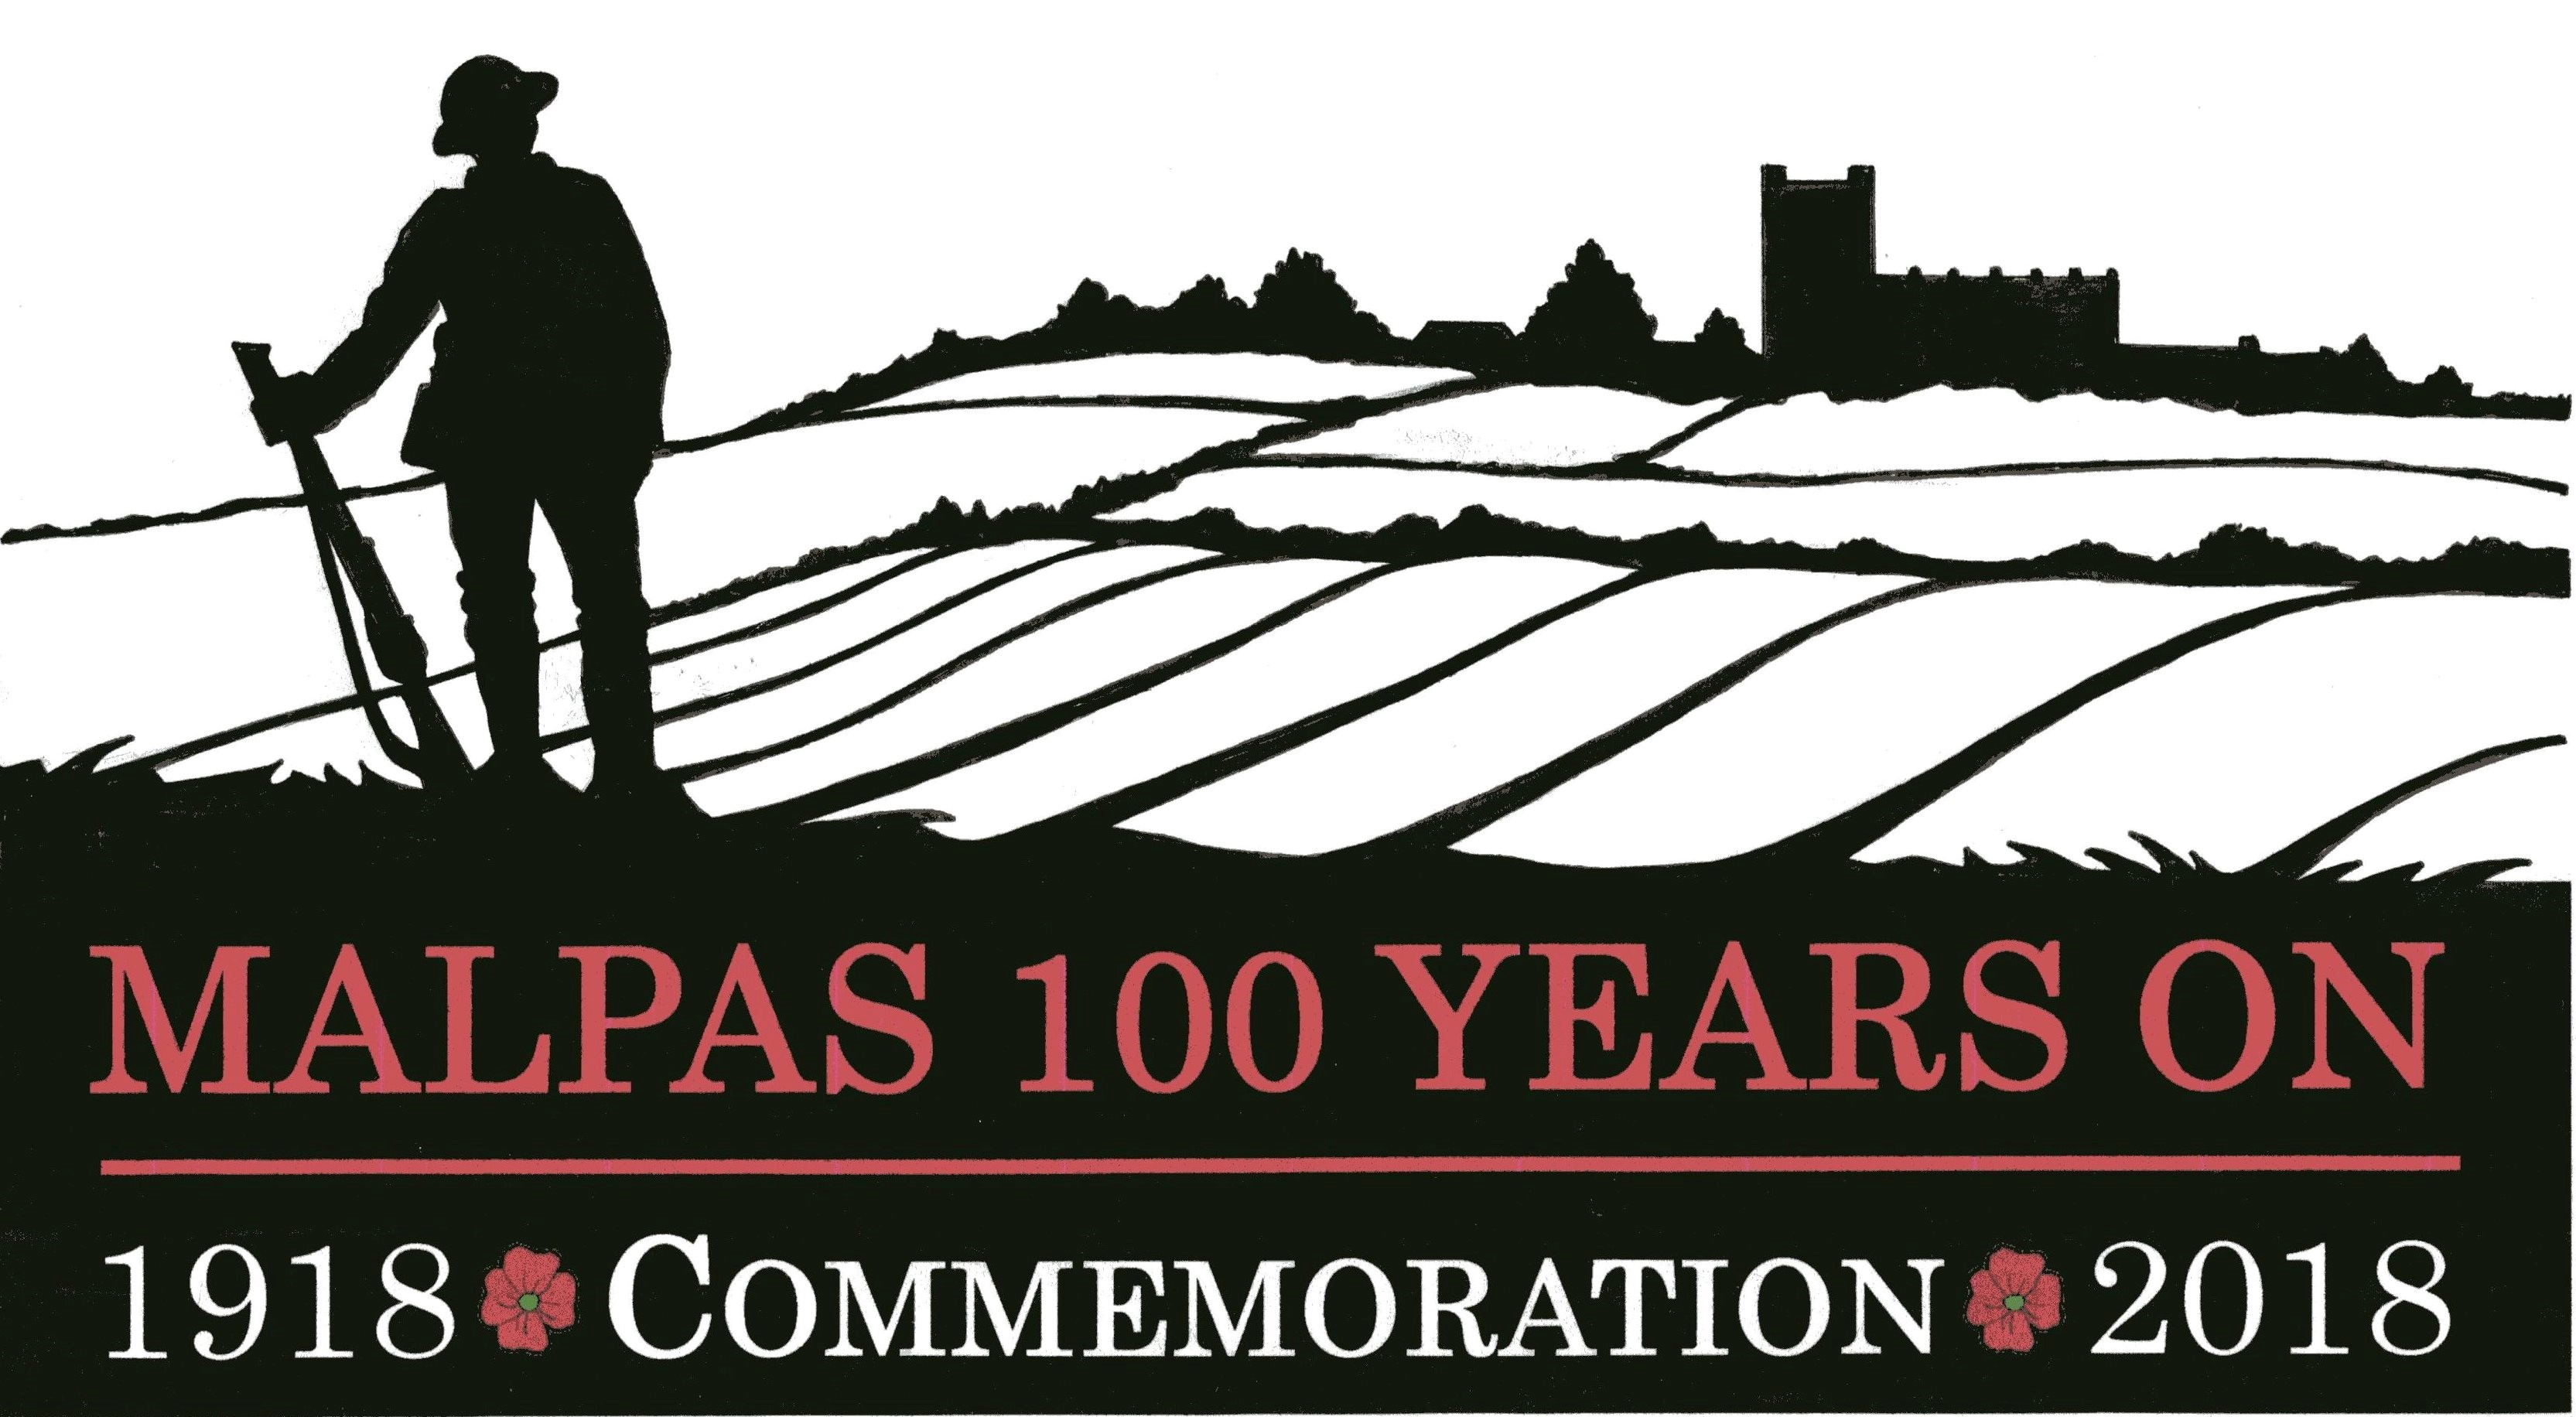 Malpas 100 years on logo